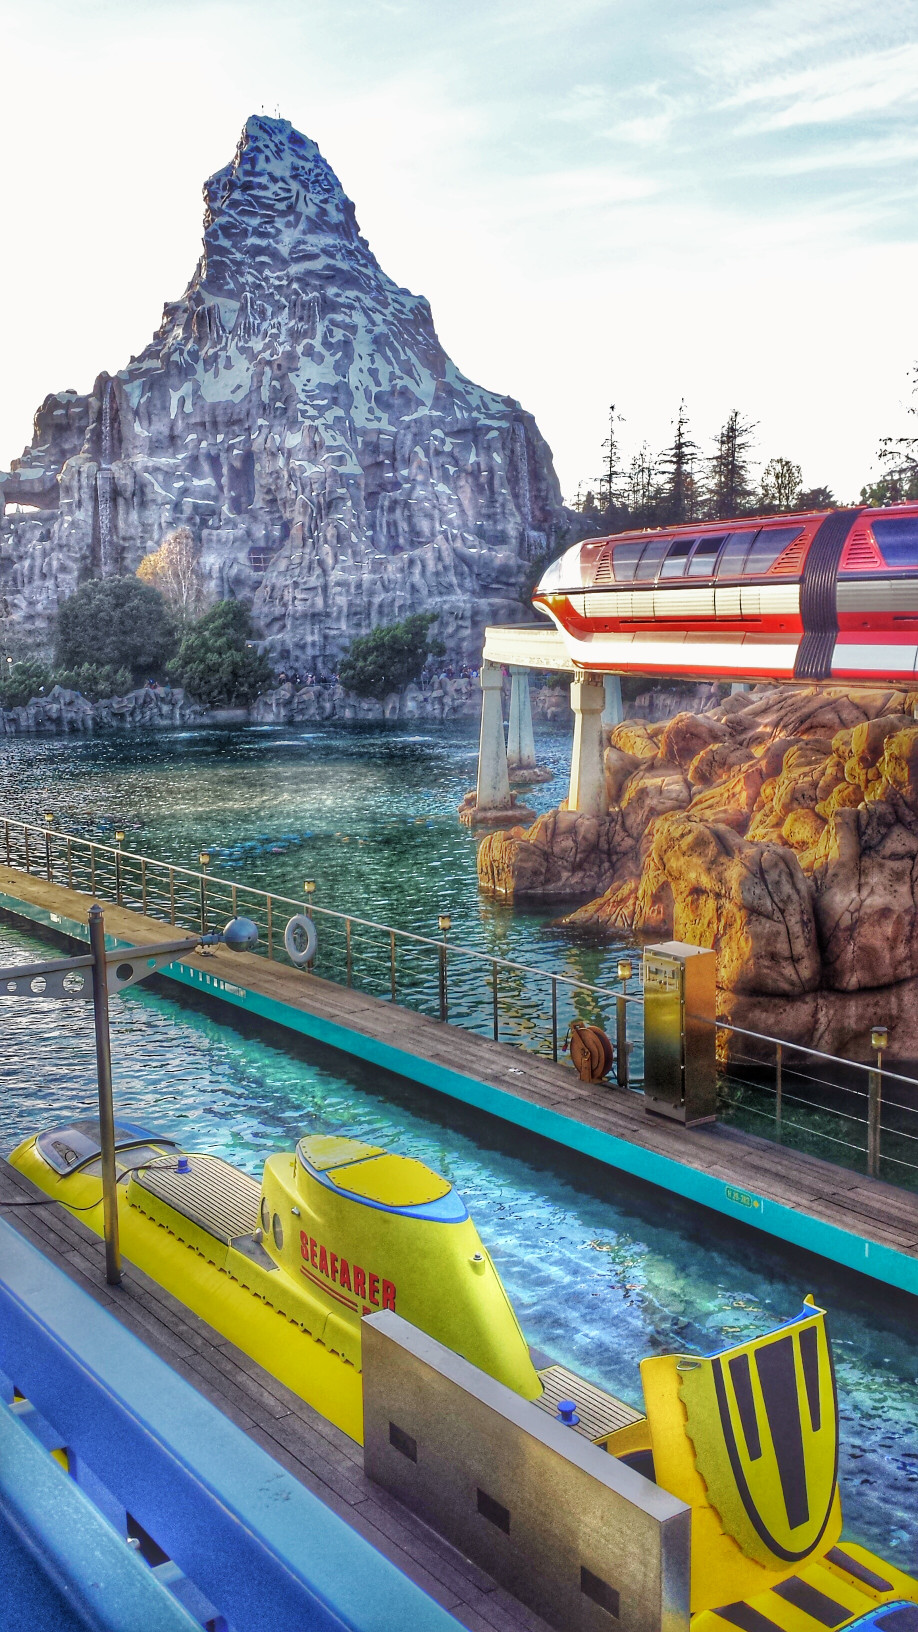 How To Bring Disney into Your Homeschool Routine, tips featured by top US Disney blogger, Marcie and the Mouse: One of the craziest Disneyland facts is that President Nixon got stuck on the Disneyland Monorail.